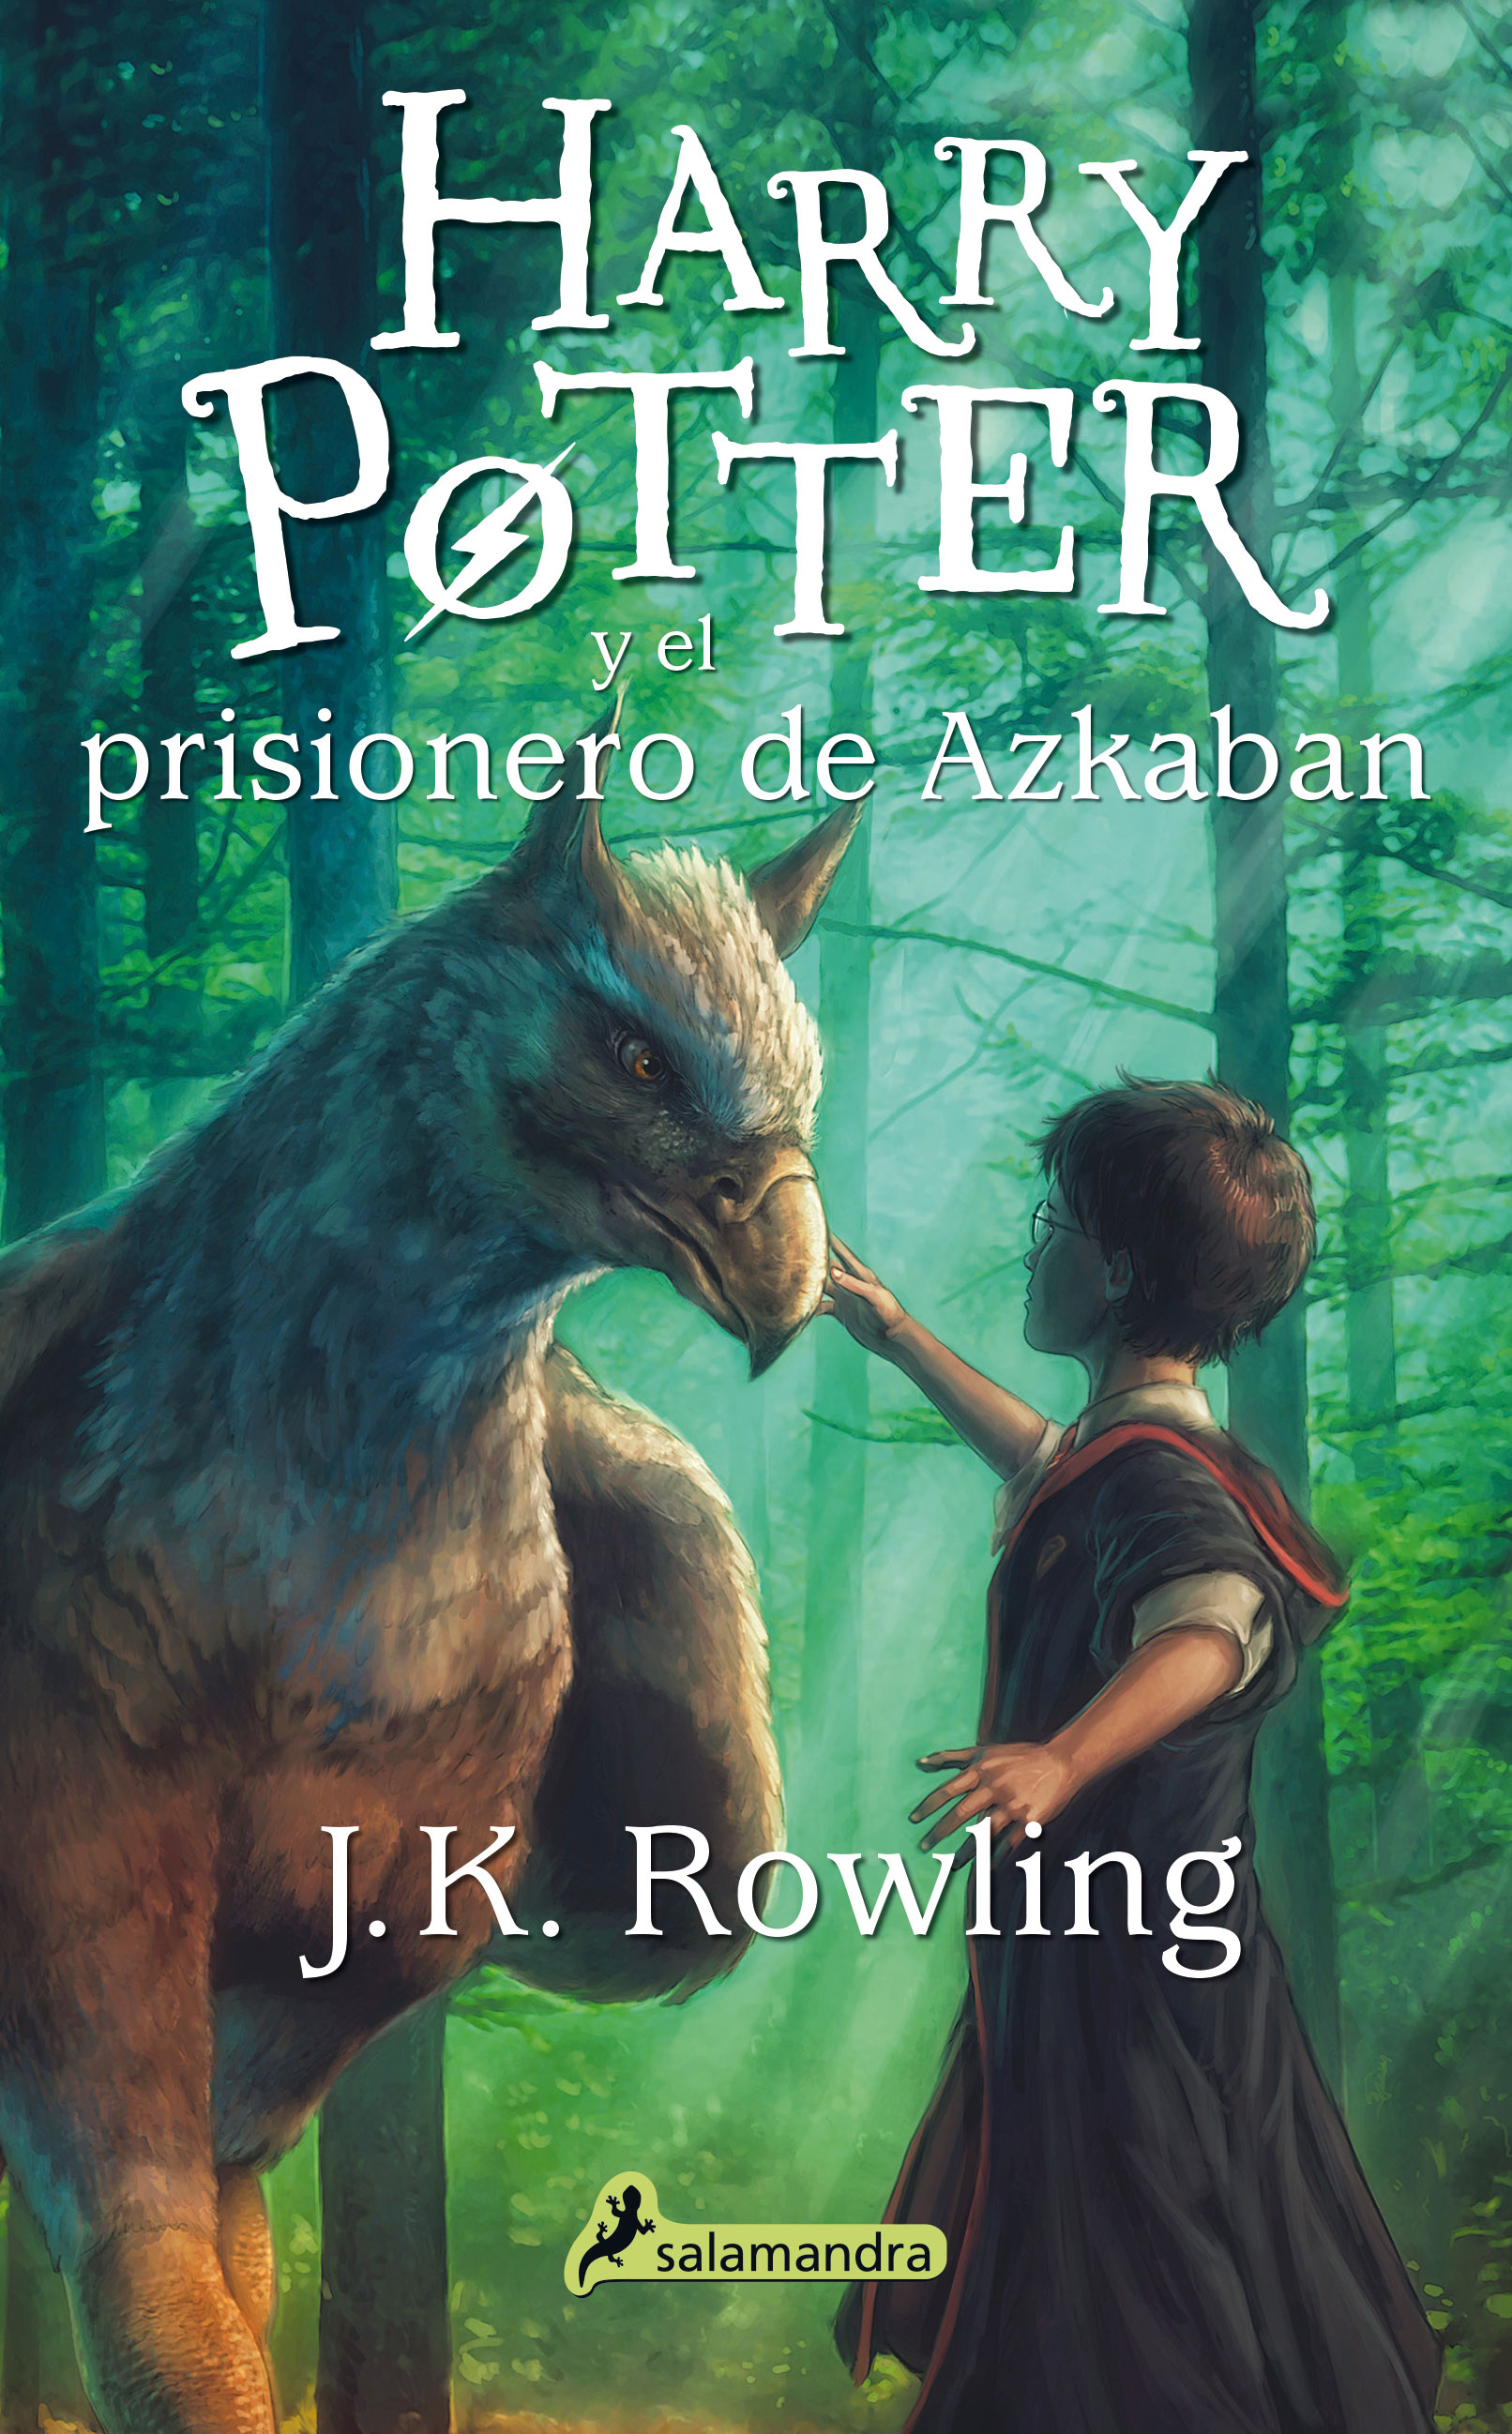 Spanish redesigned cover (2014)